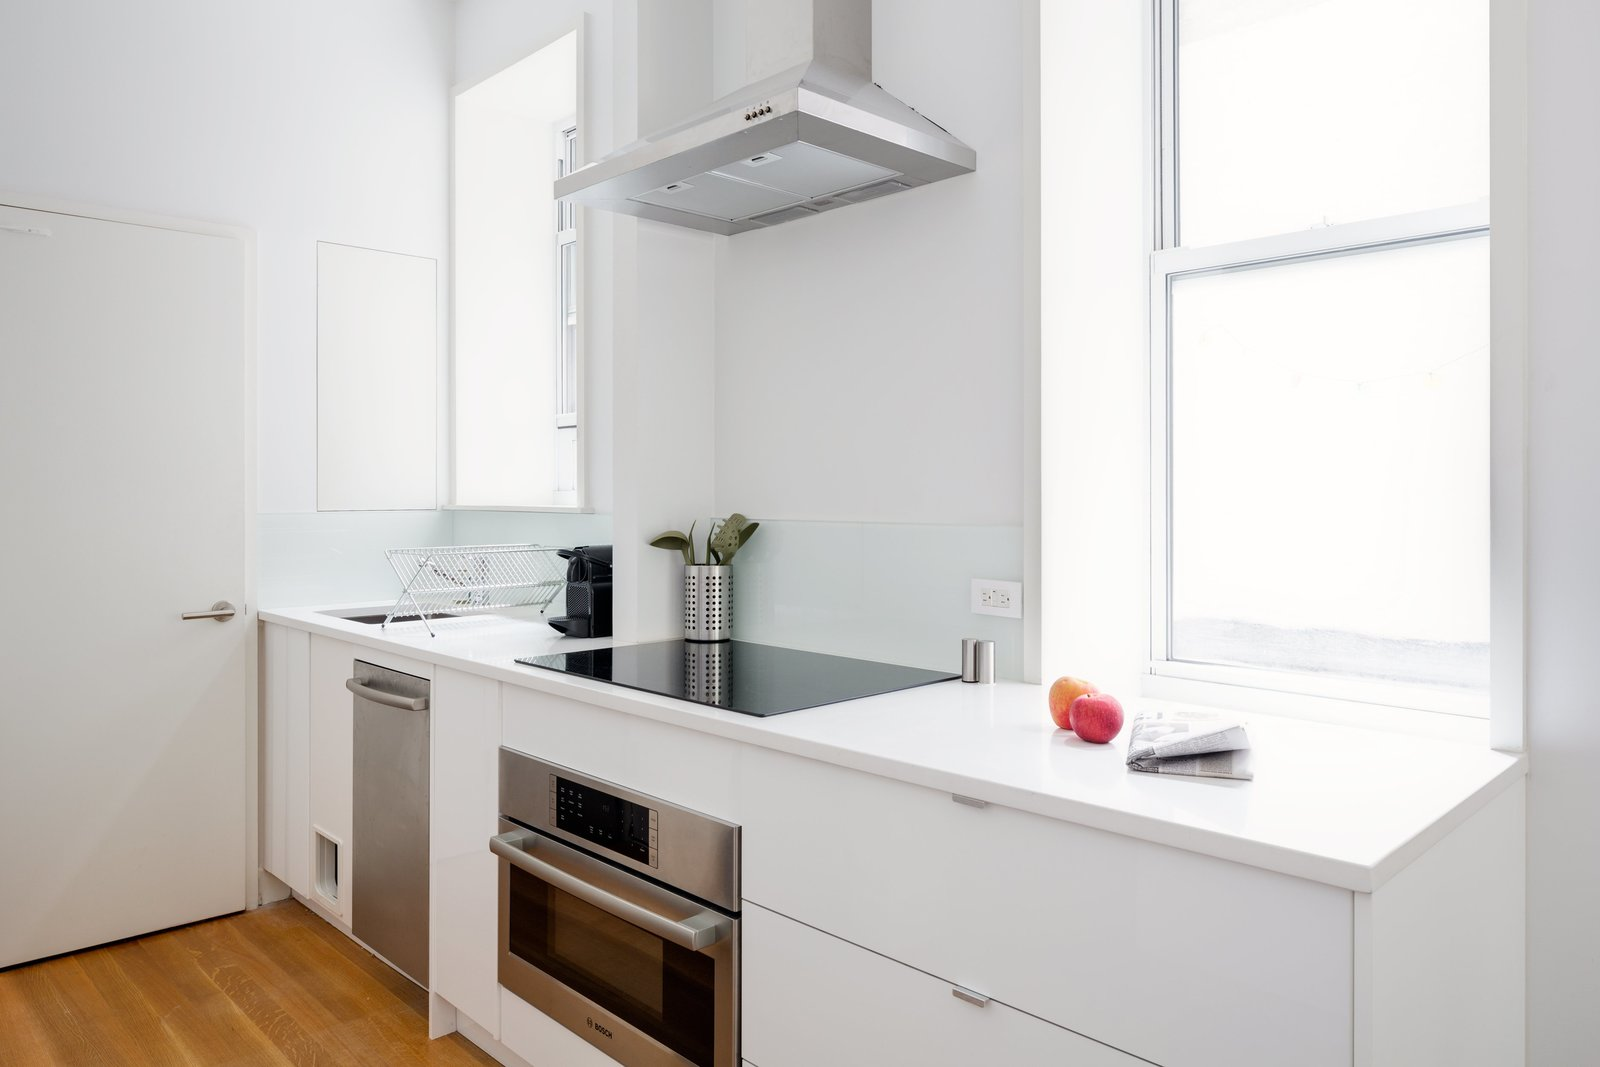 Kitchen, Cooktops, Range Hood, Range, Dishwasher, White Cabinet, Undermount Sink, and Medium Hardwood Floor The space-saving appliances are all from Bosch's 500 and 800 series.  Photo 6 of 10 in This 390-Square-Foot Renovation Is Compact Yet Comfortable in Greenwich Village